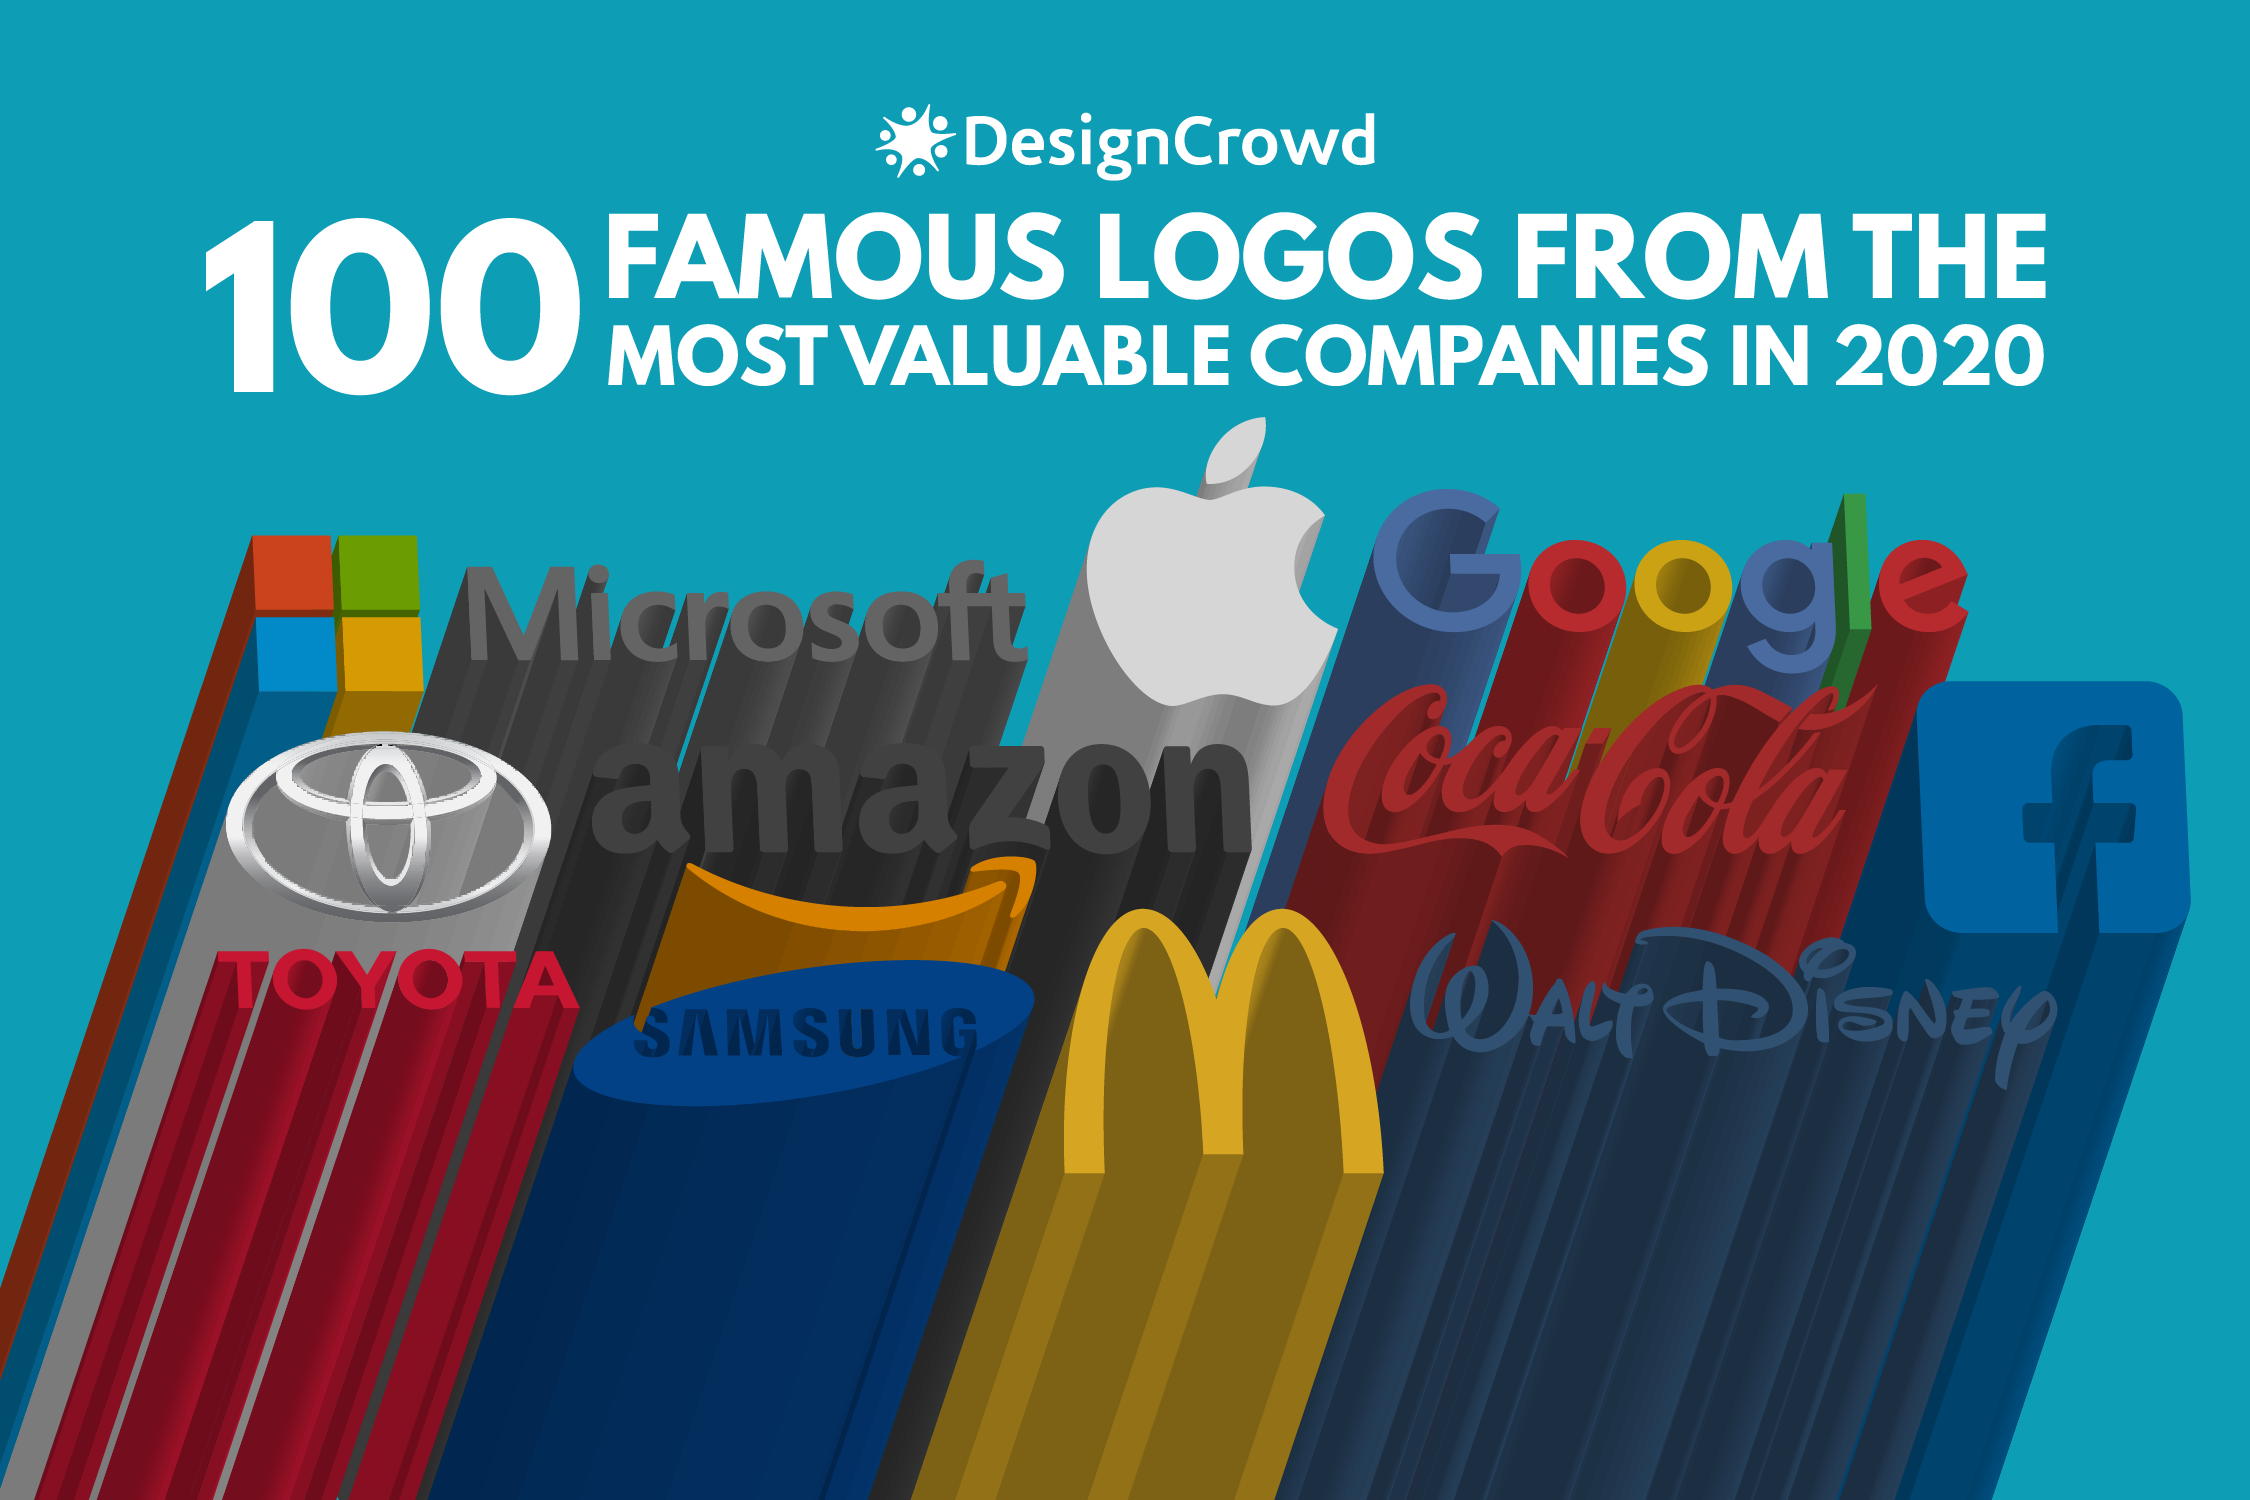 100 Famous Brand Logos From The Most Valuable Companies of 2020